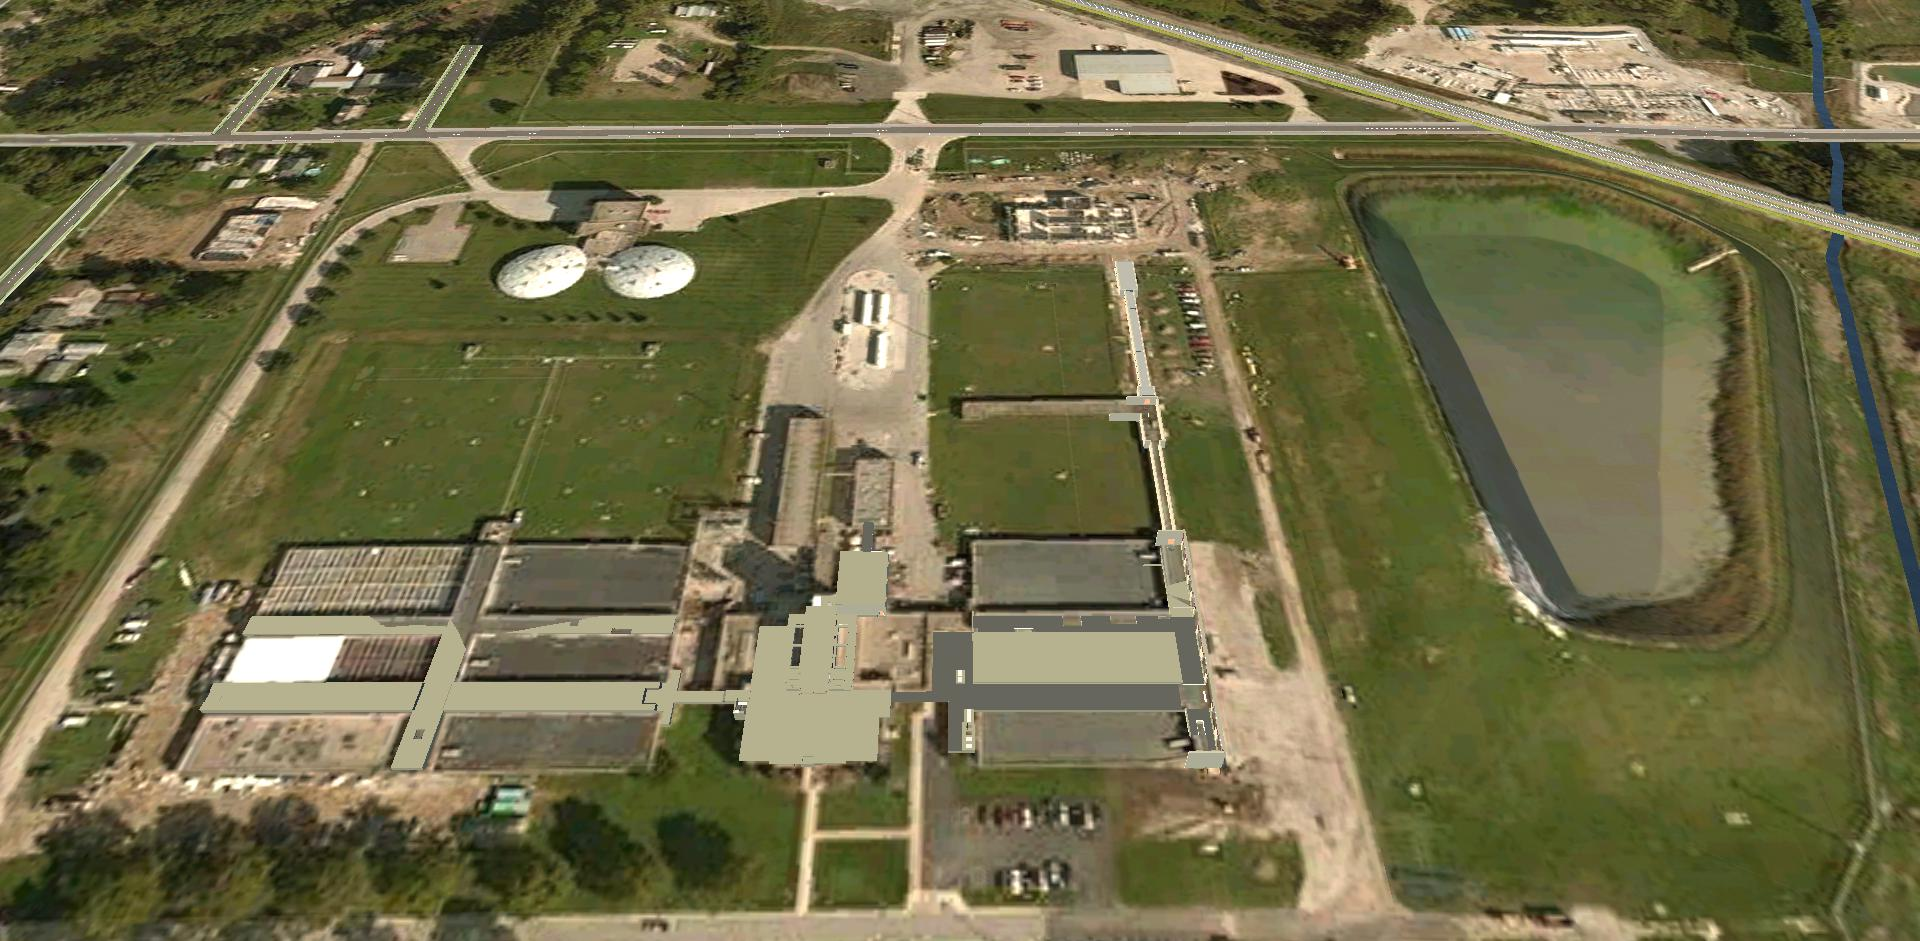 aerial view of Toledo's Collins Park Water Treatment Plant before the expansion and modernization project